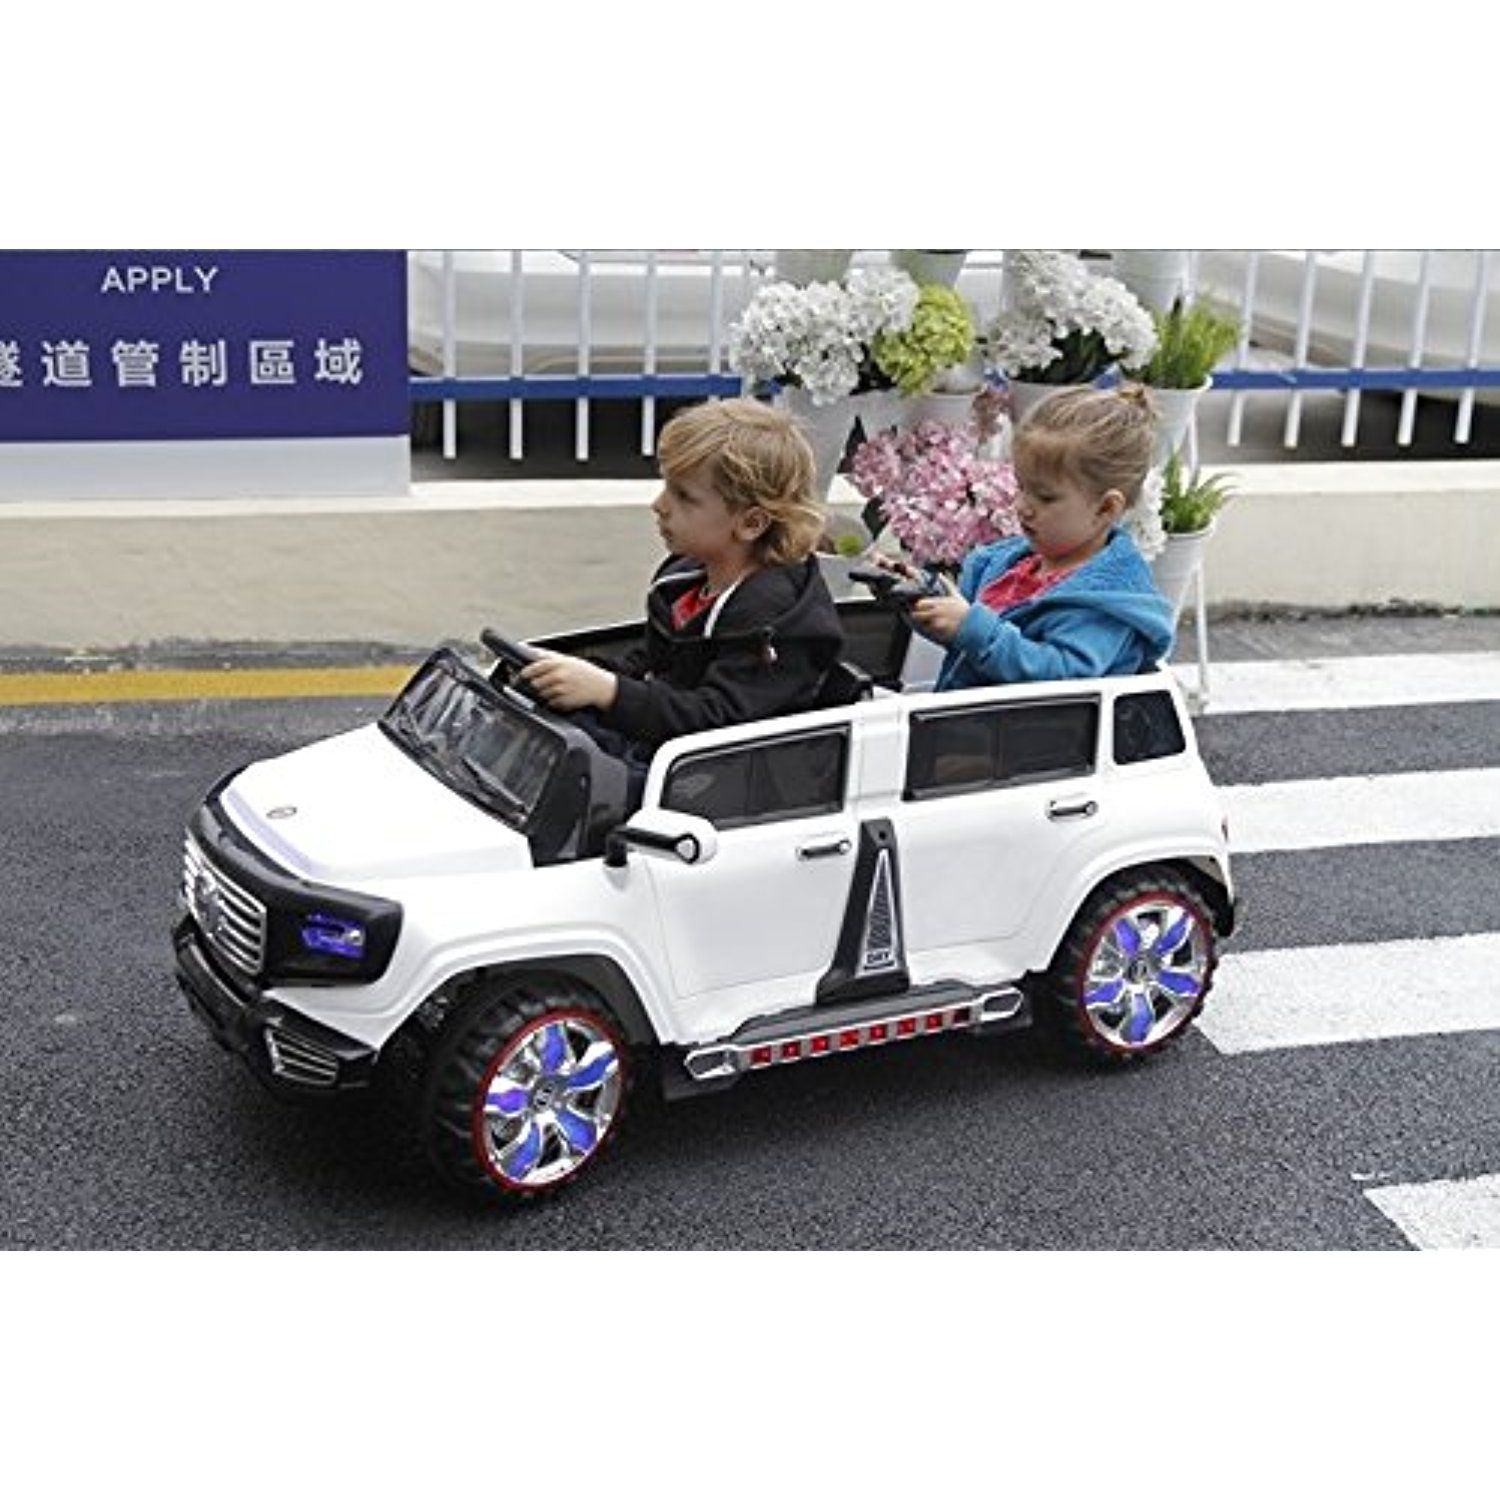 Ride On Car 2 Seater Limousine Style 4 Opening Doors 3 Speed Electric Car With Remote Control Battery Operated Car For Kids Two Car Toddler Car Limousine